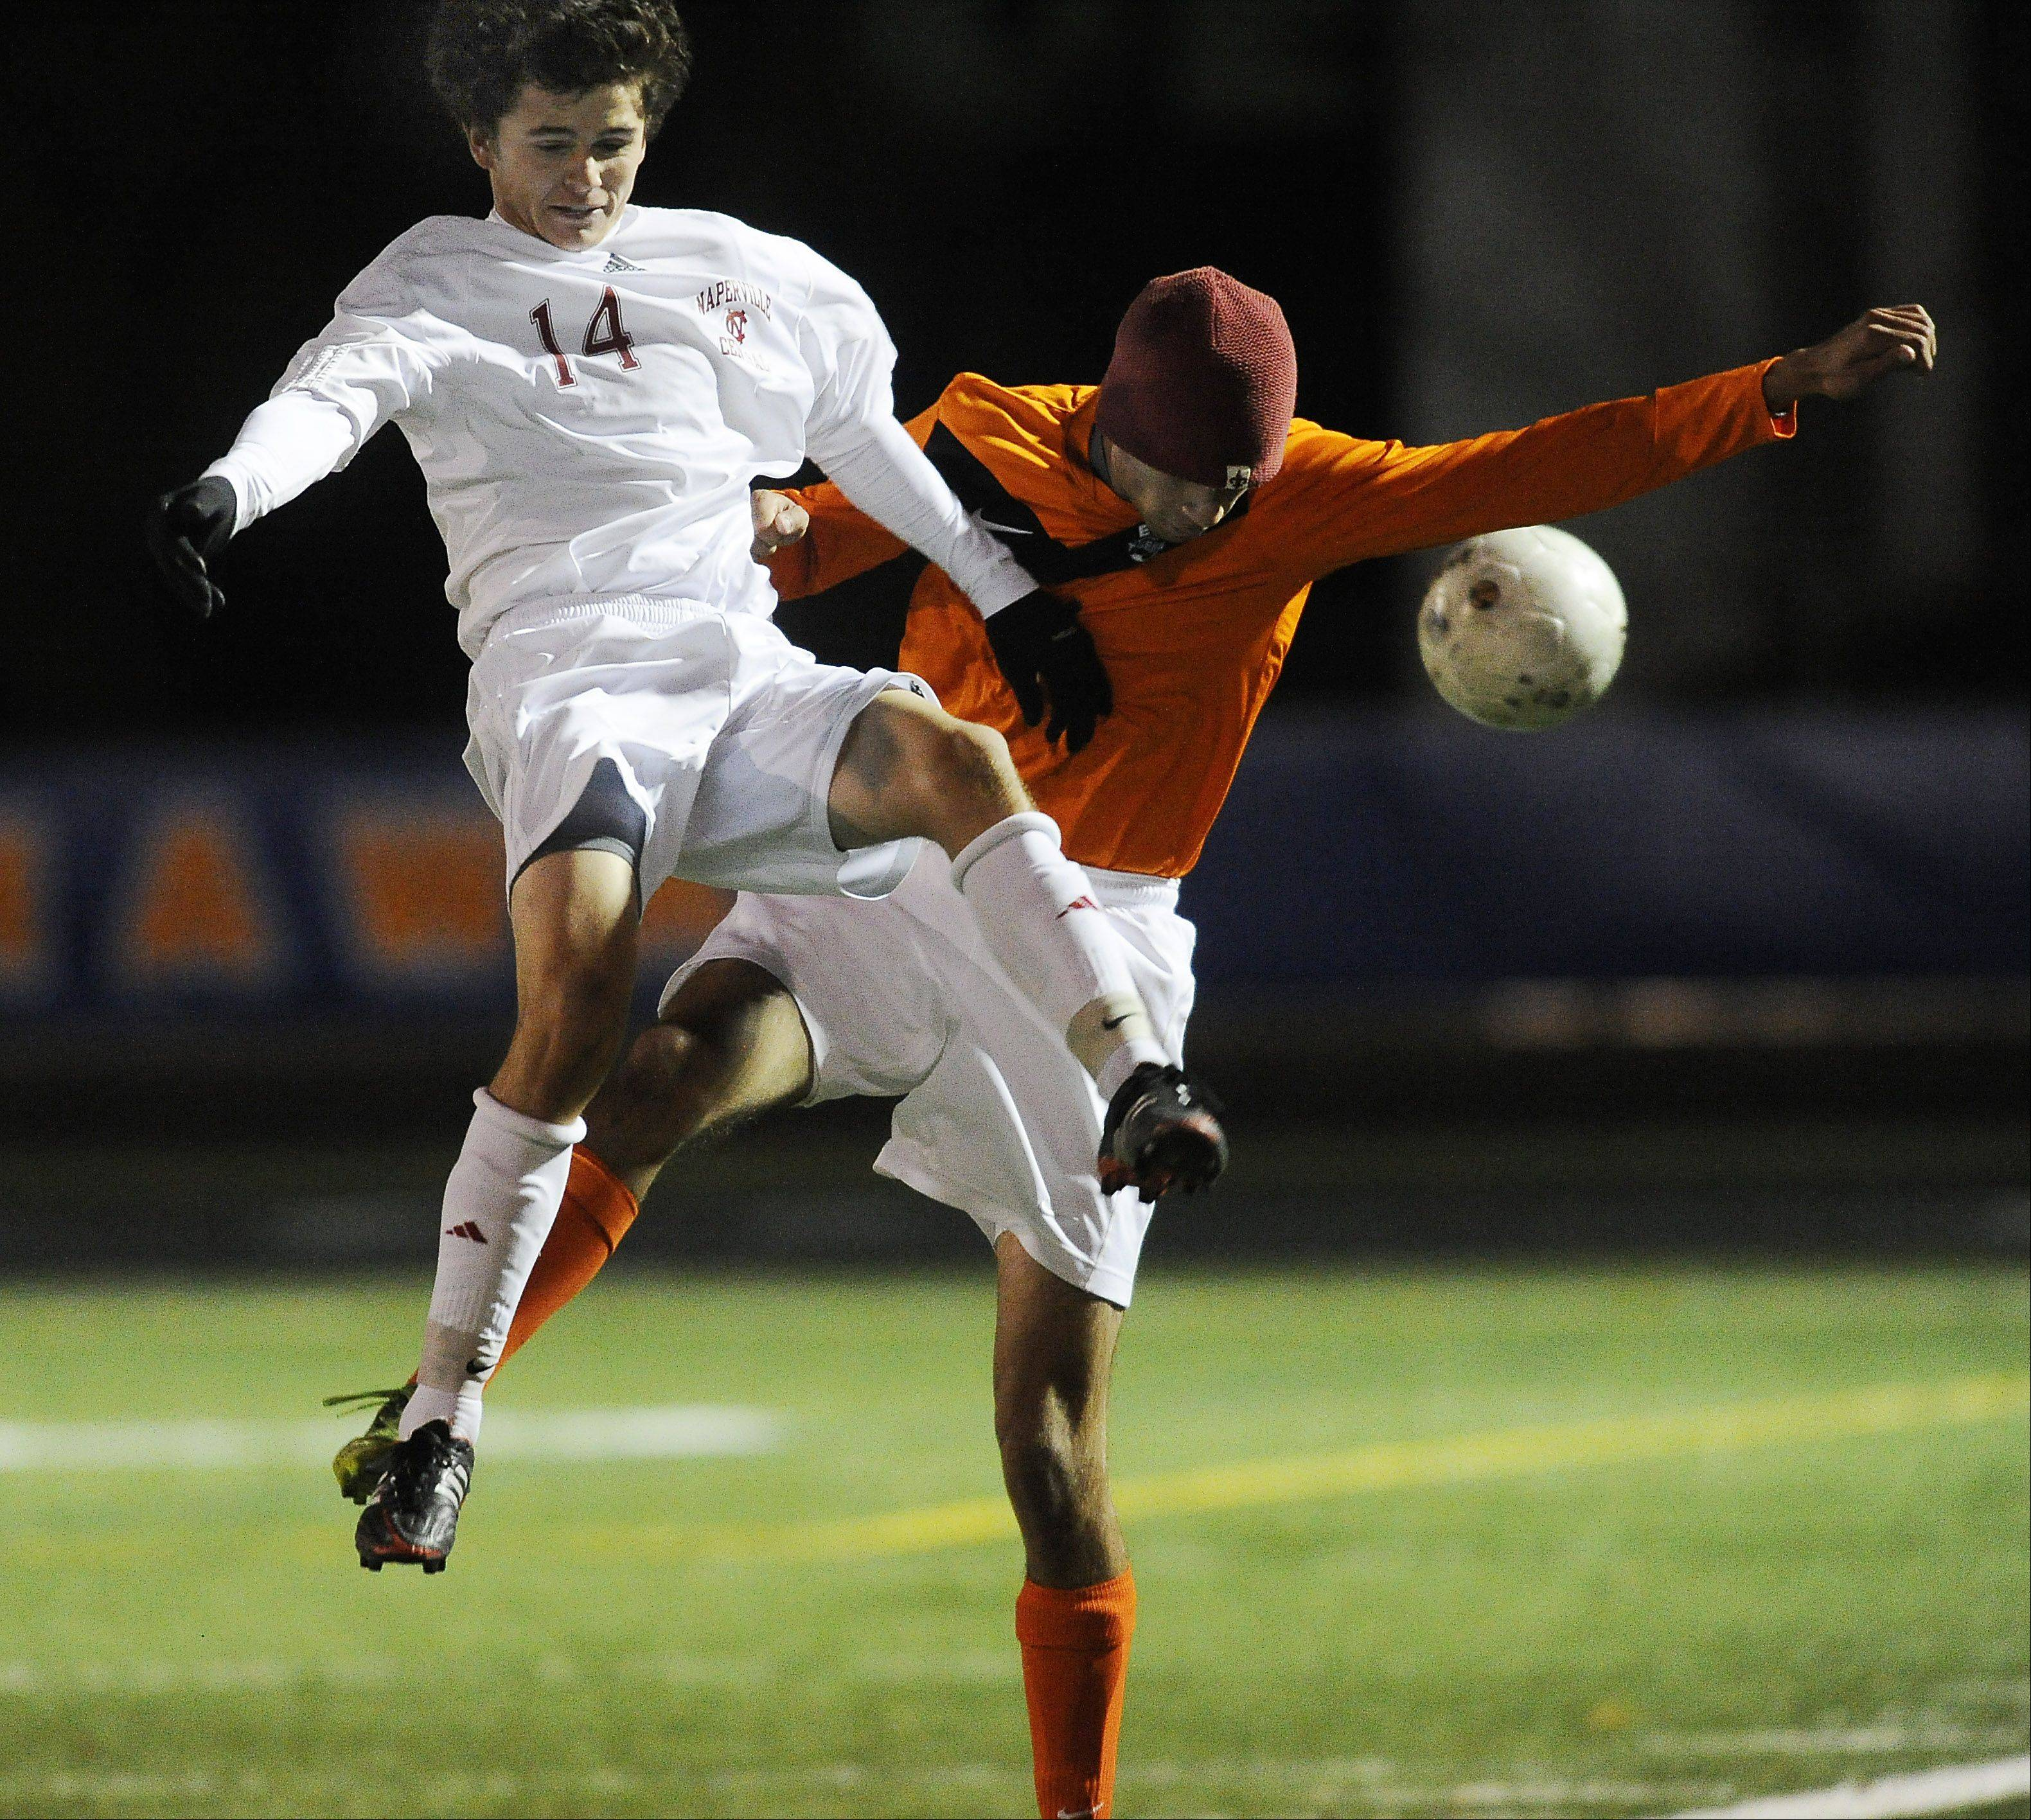 Naperville Central's David Murphy goes up against Edwardsville's Suleman Bazai in the first period of play in the Class 3A state semifinals at Hoffman Estates High School on Friday.